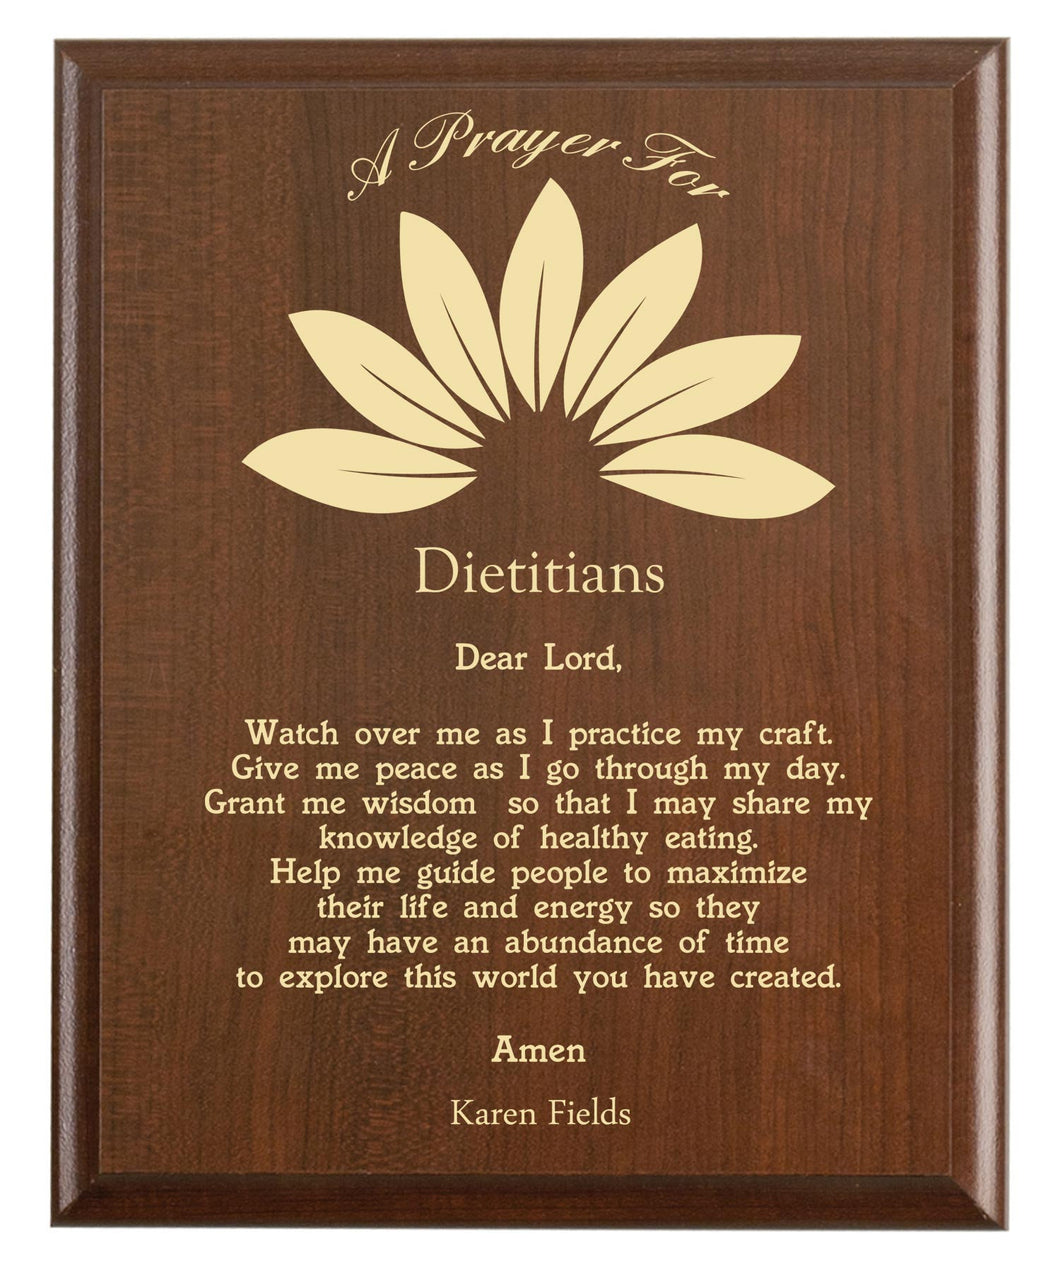 Christian prayer for a dietitian with industry logo and free personalization. Cherry finish with laser engraved text.